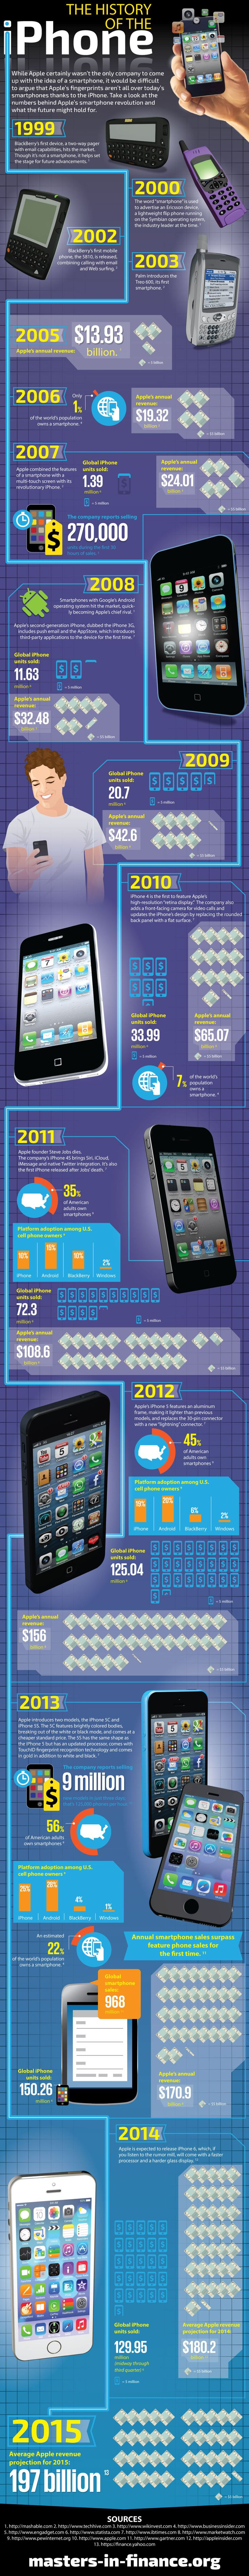 The History Of The iPhone in One Infographic ~ Every Tech Pro